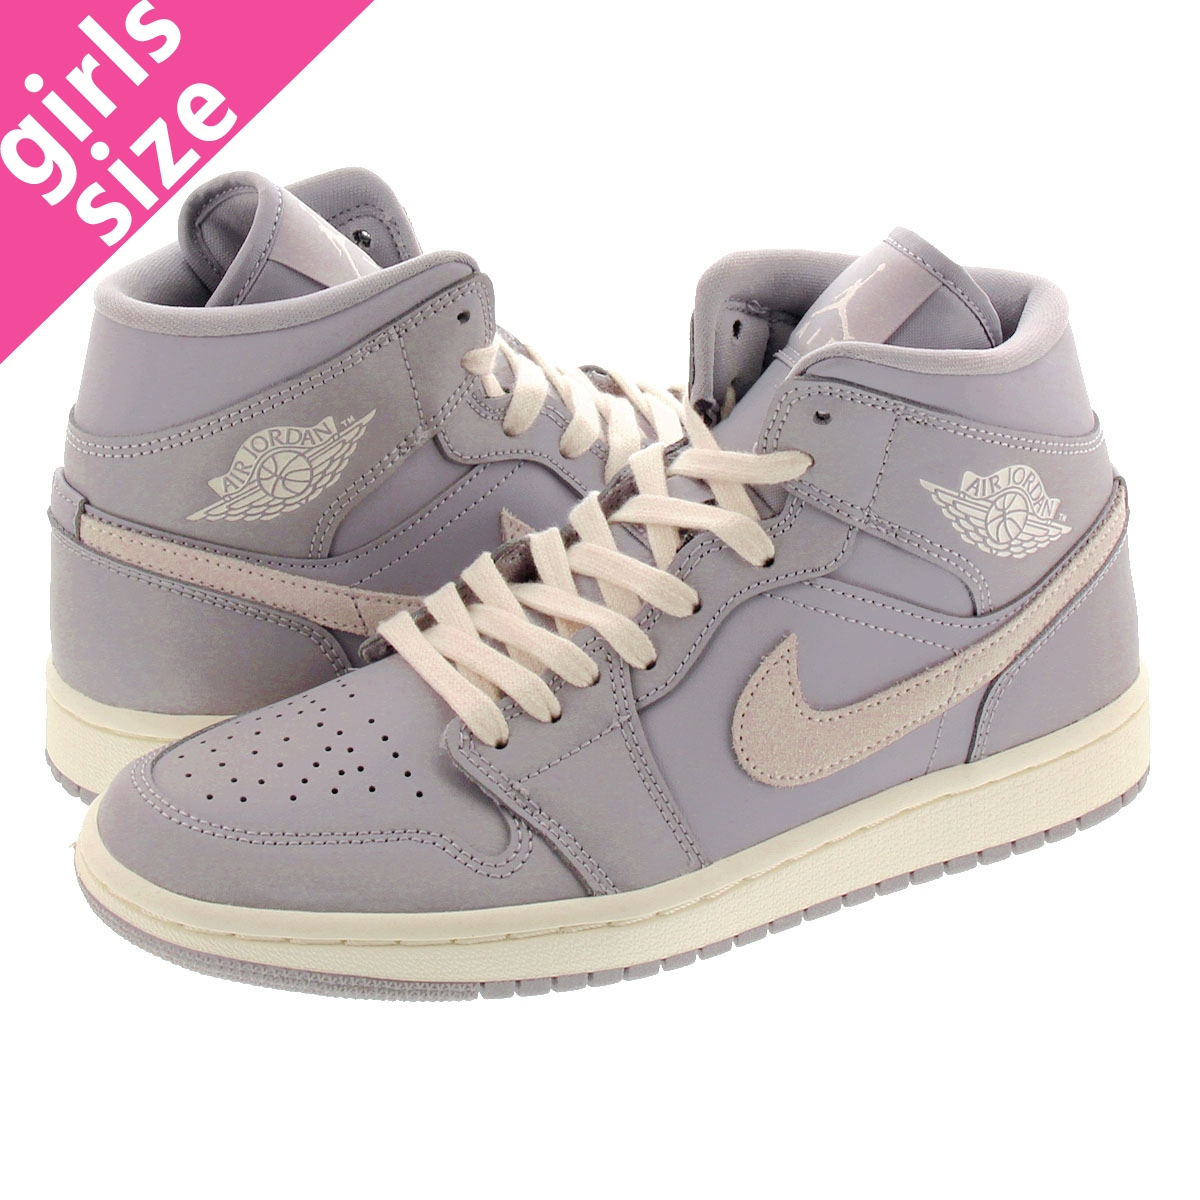 Jordan Wmns Air Jordan 1 Mid Atmosphere Grey CD7240 002